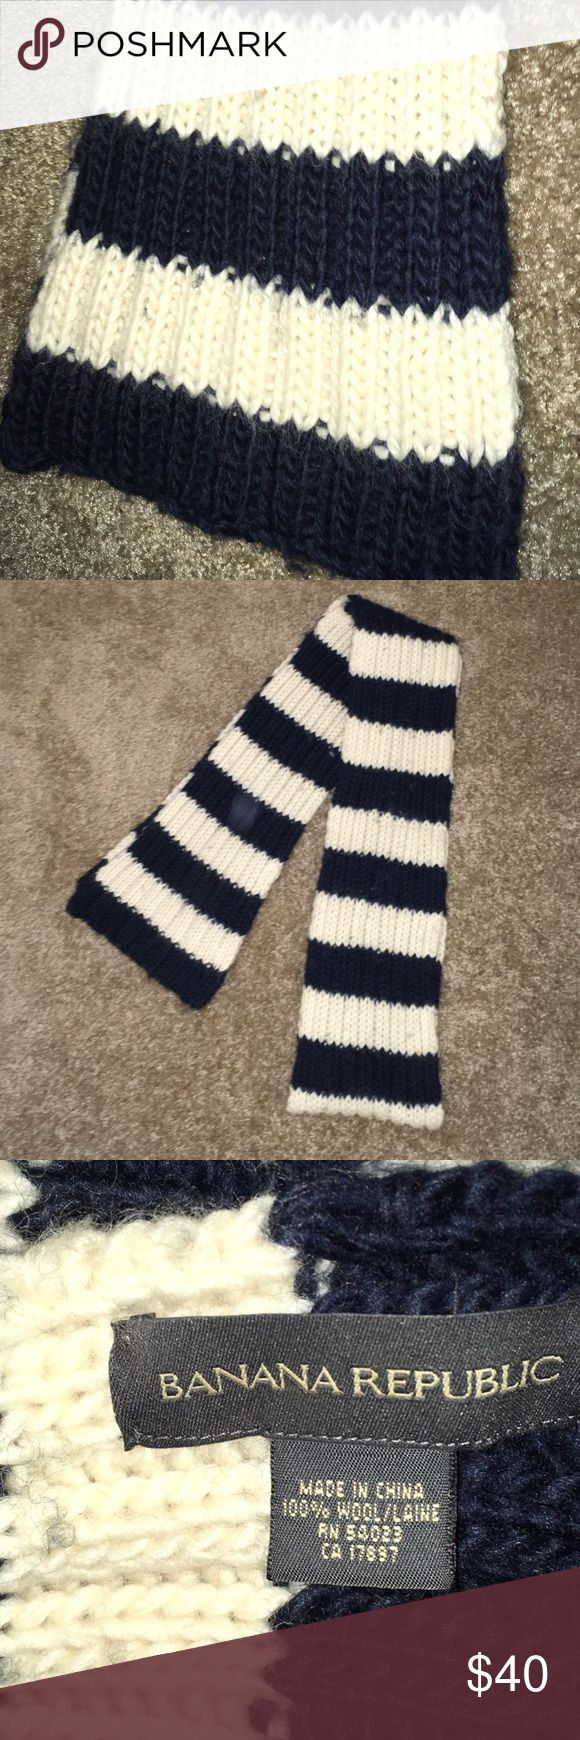 Banana Republic Chunky Knit Wool Scarf Banana Republic thick, chunky knit wool scarf.  Navy and cream.  100% wool.  Has some pilling, easily removed. Banana Republic Accessories Scarves & Wraps